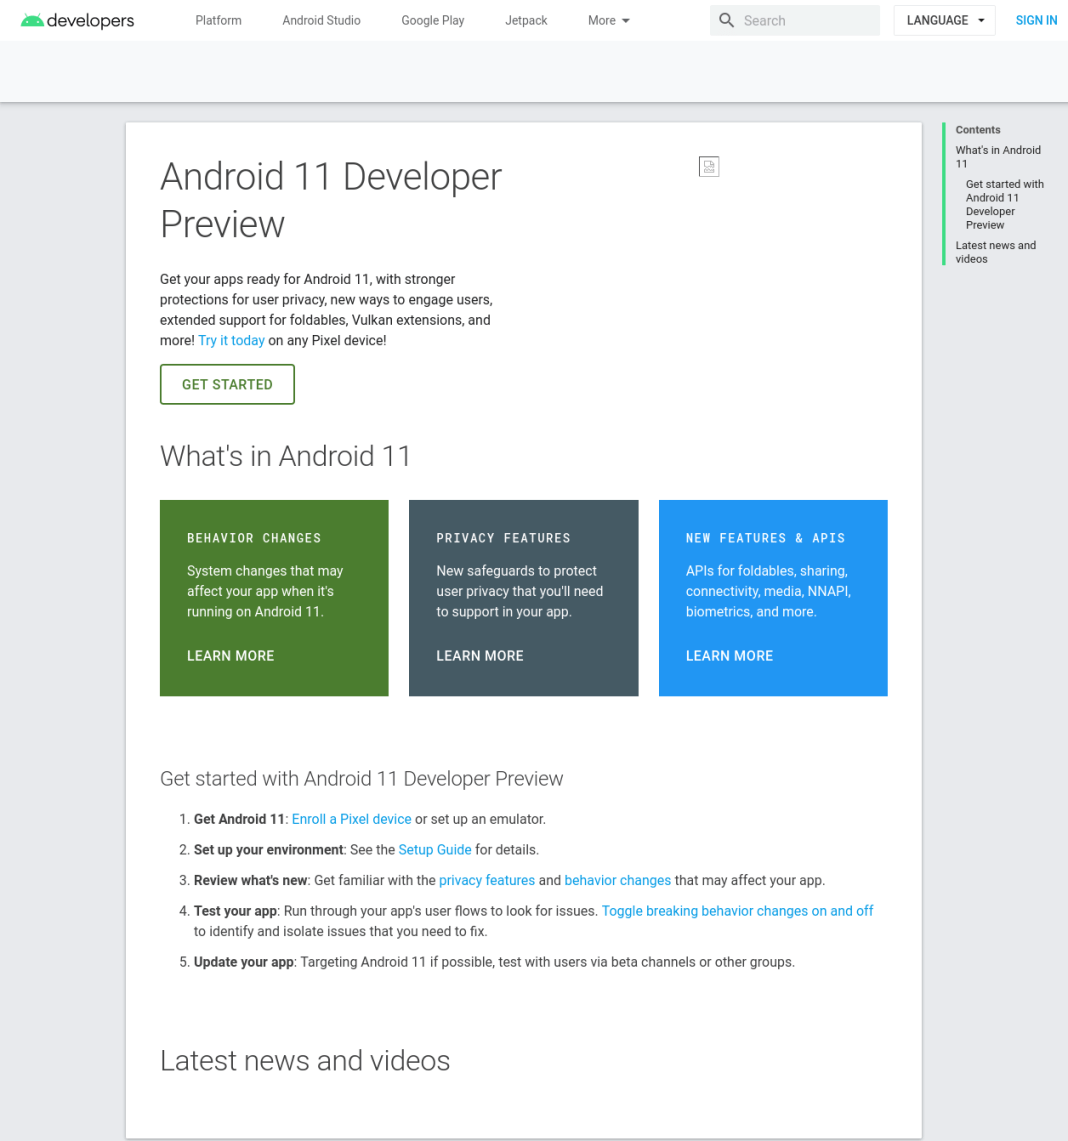 Android 11 Developer Preview page